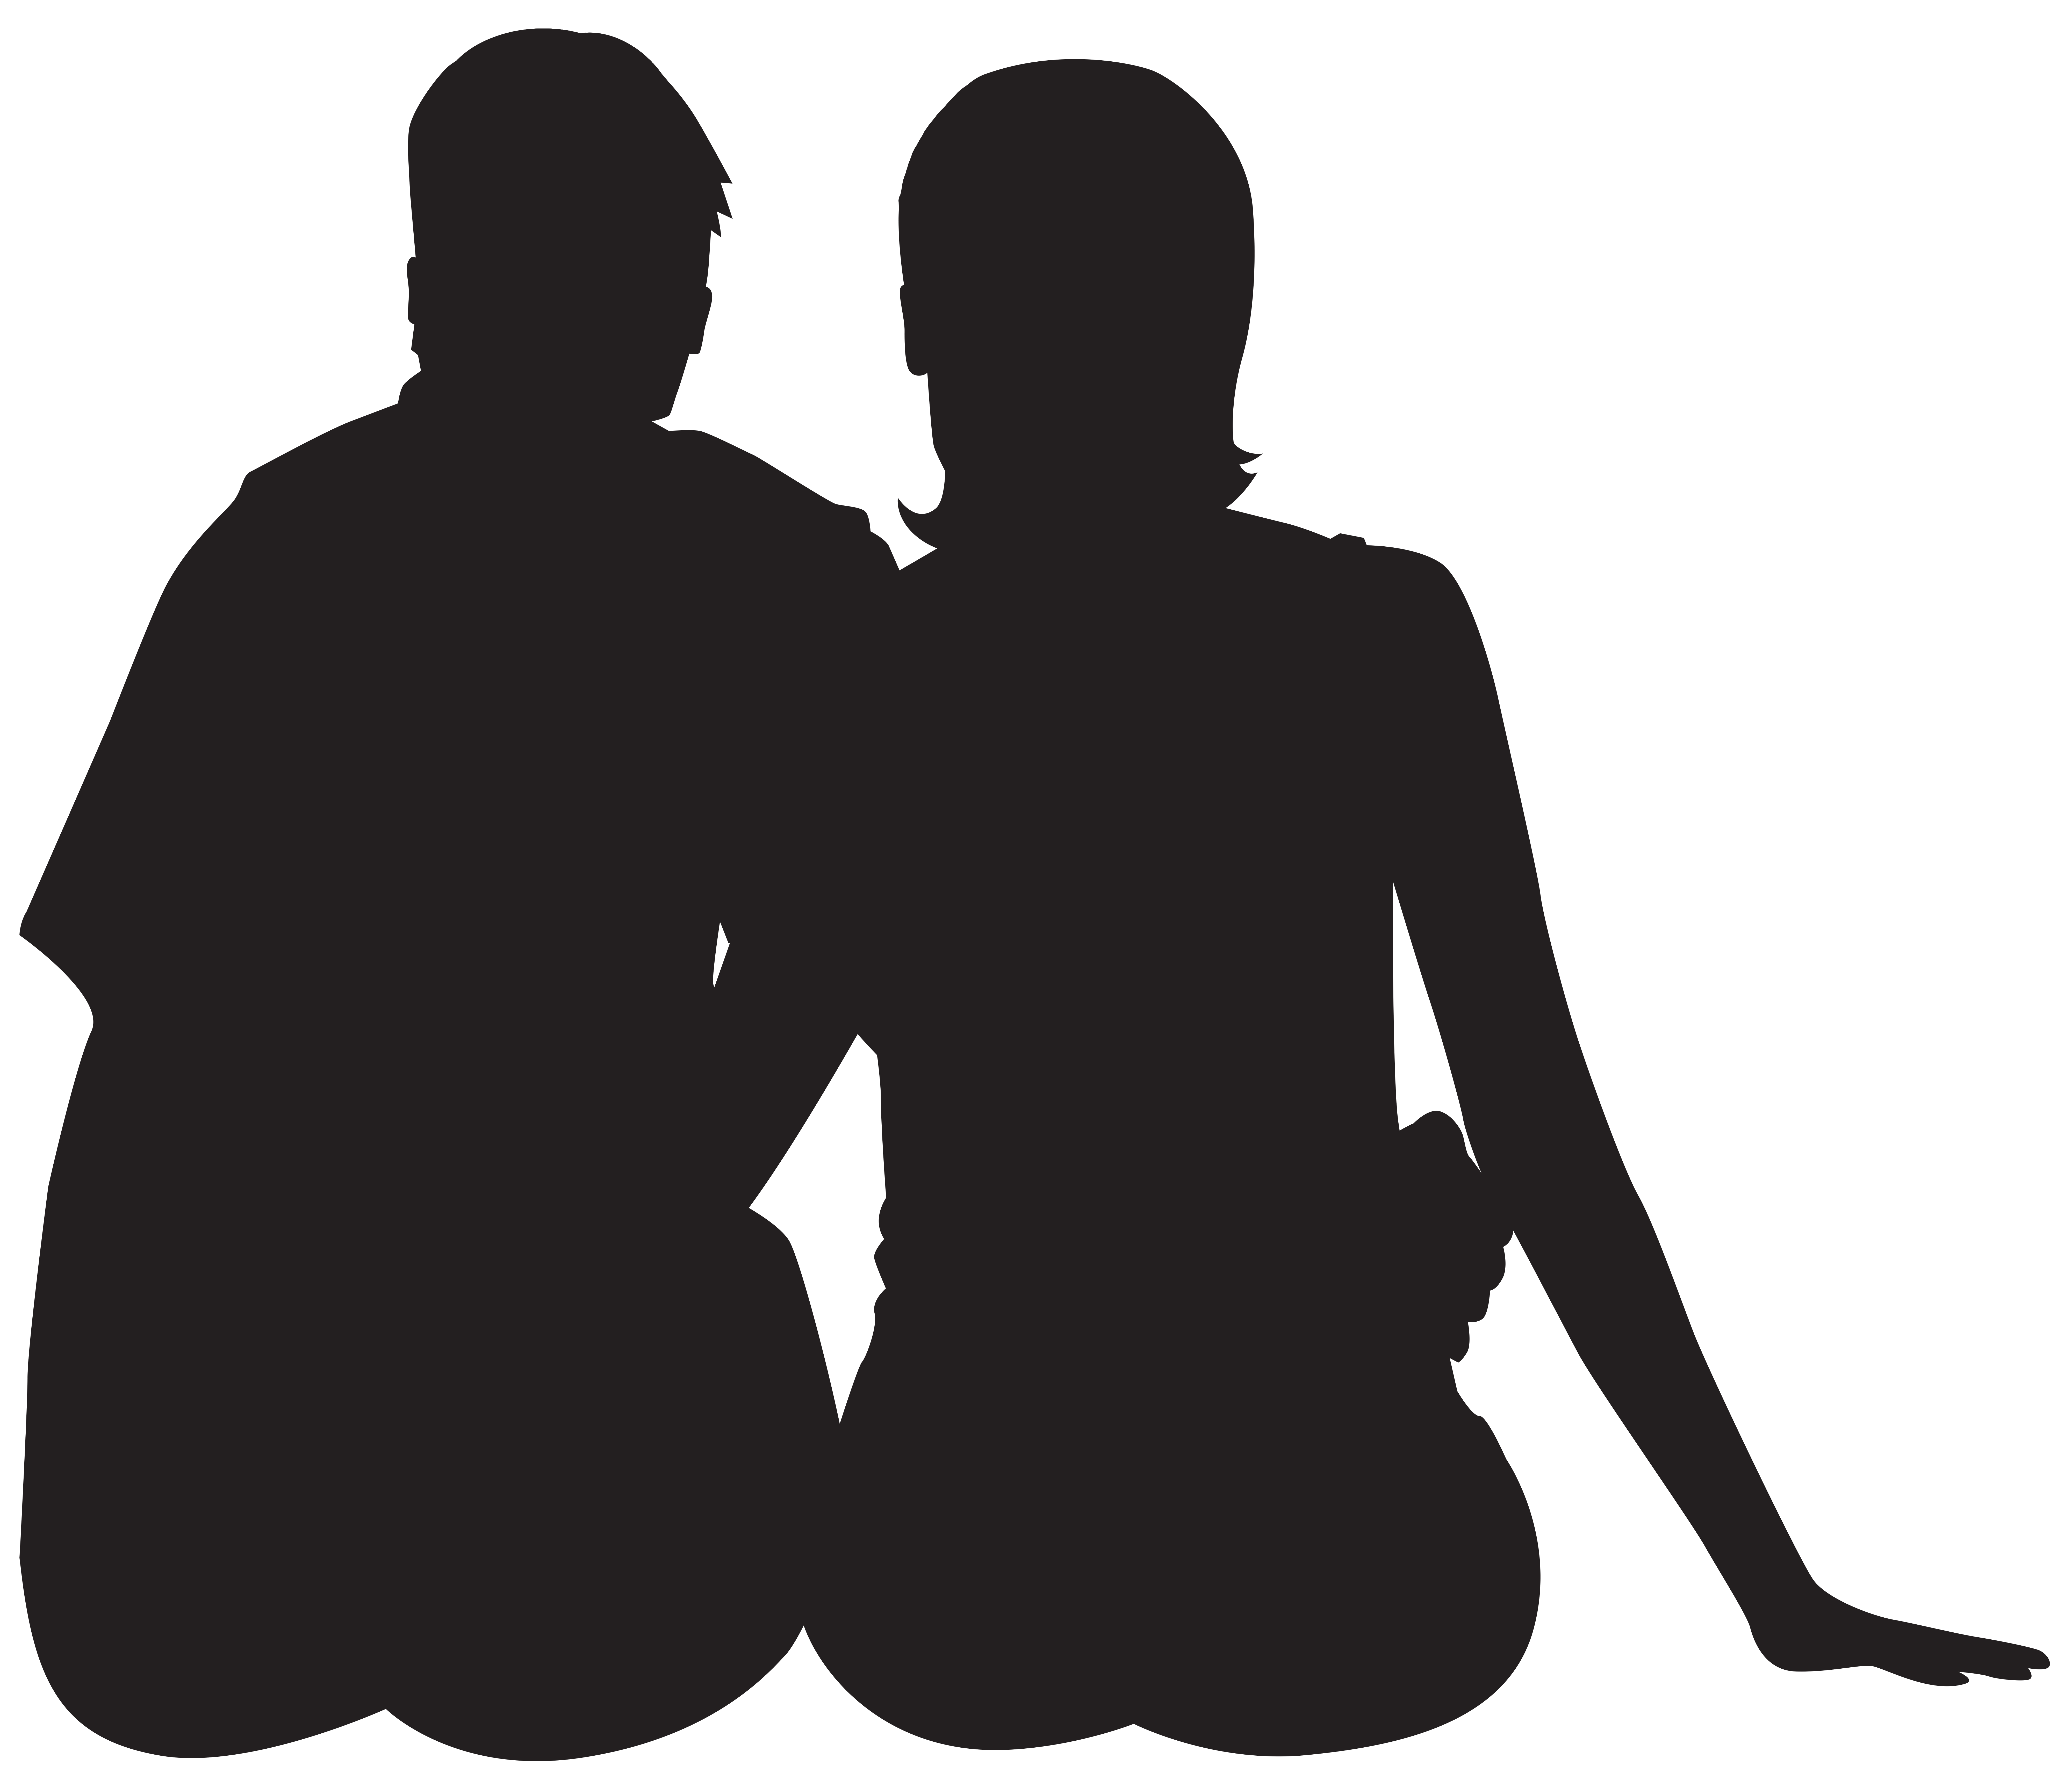 Couple silhouette png. Sitting clip art image